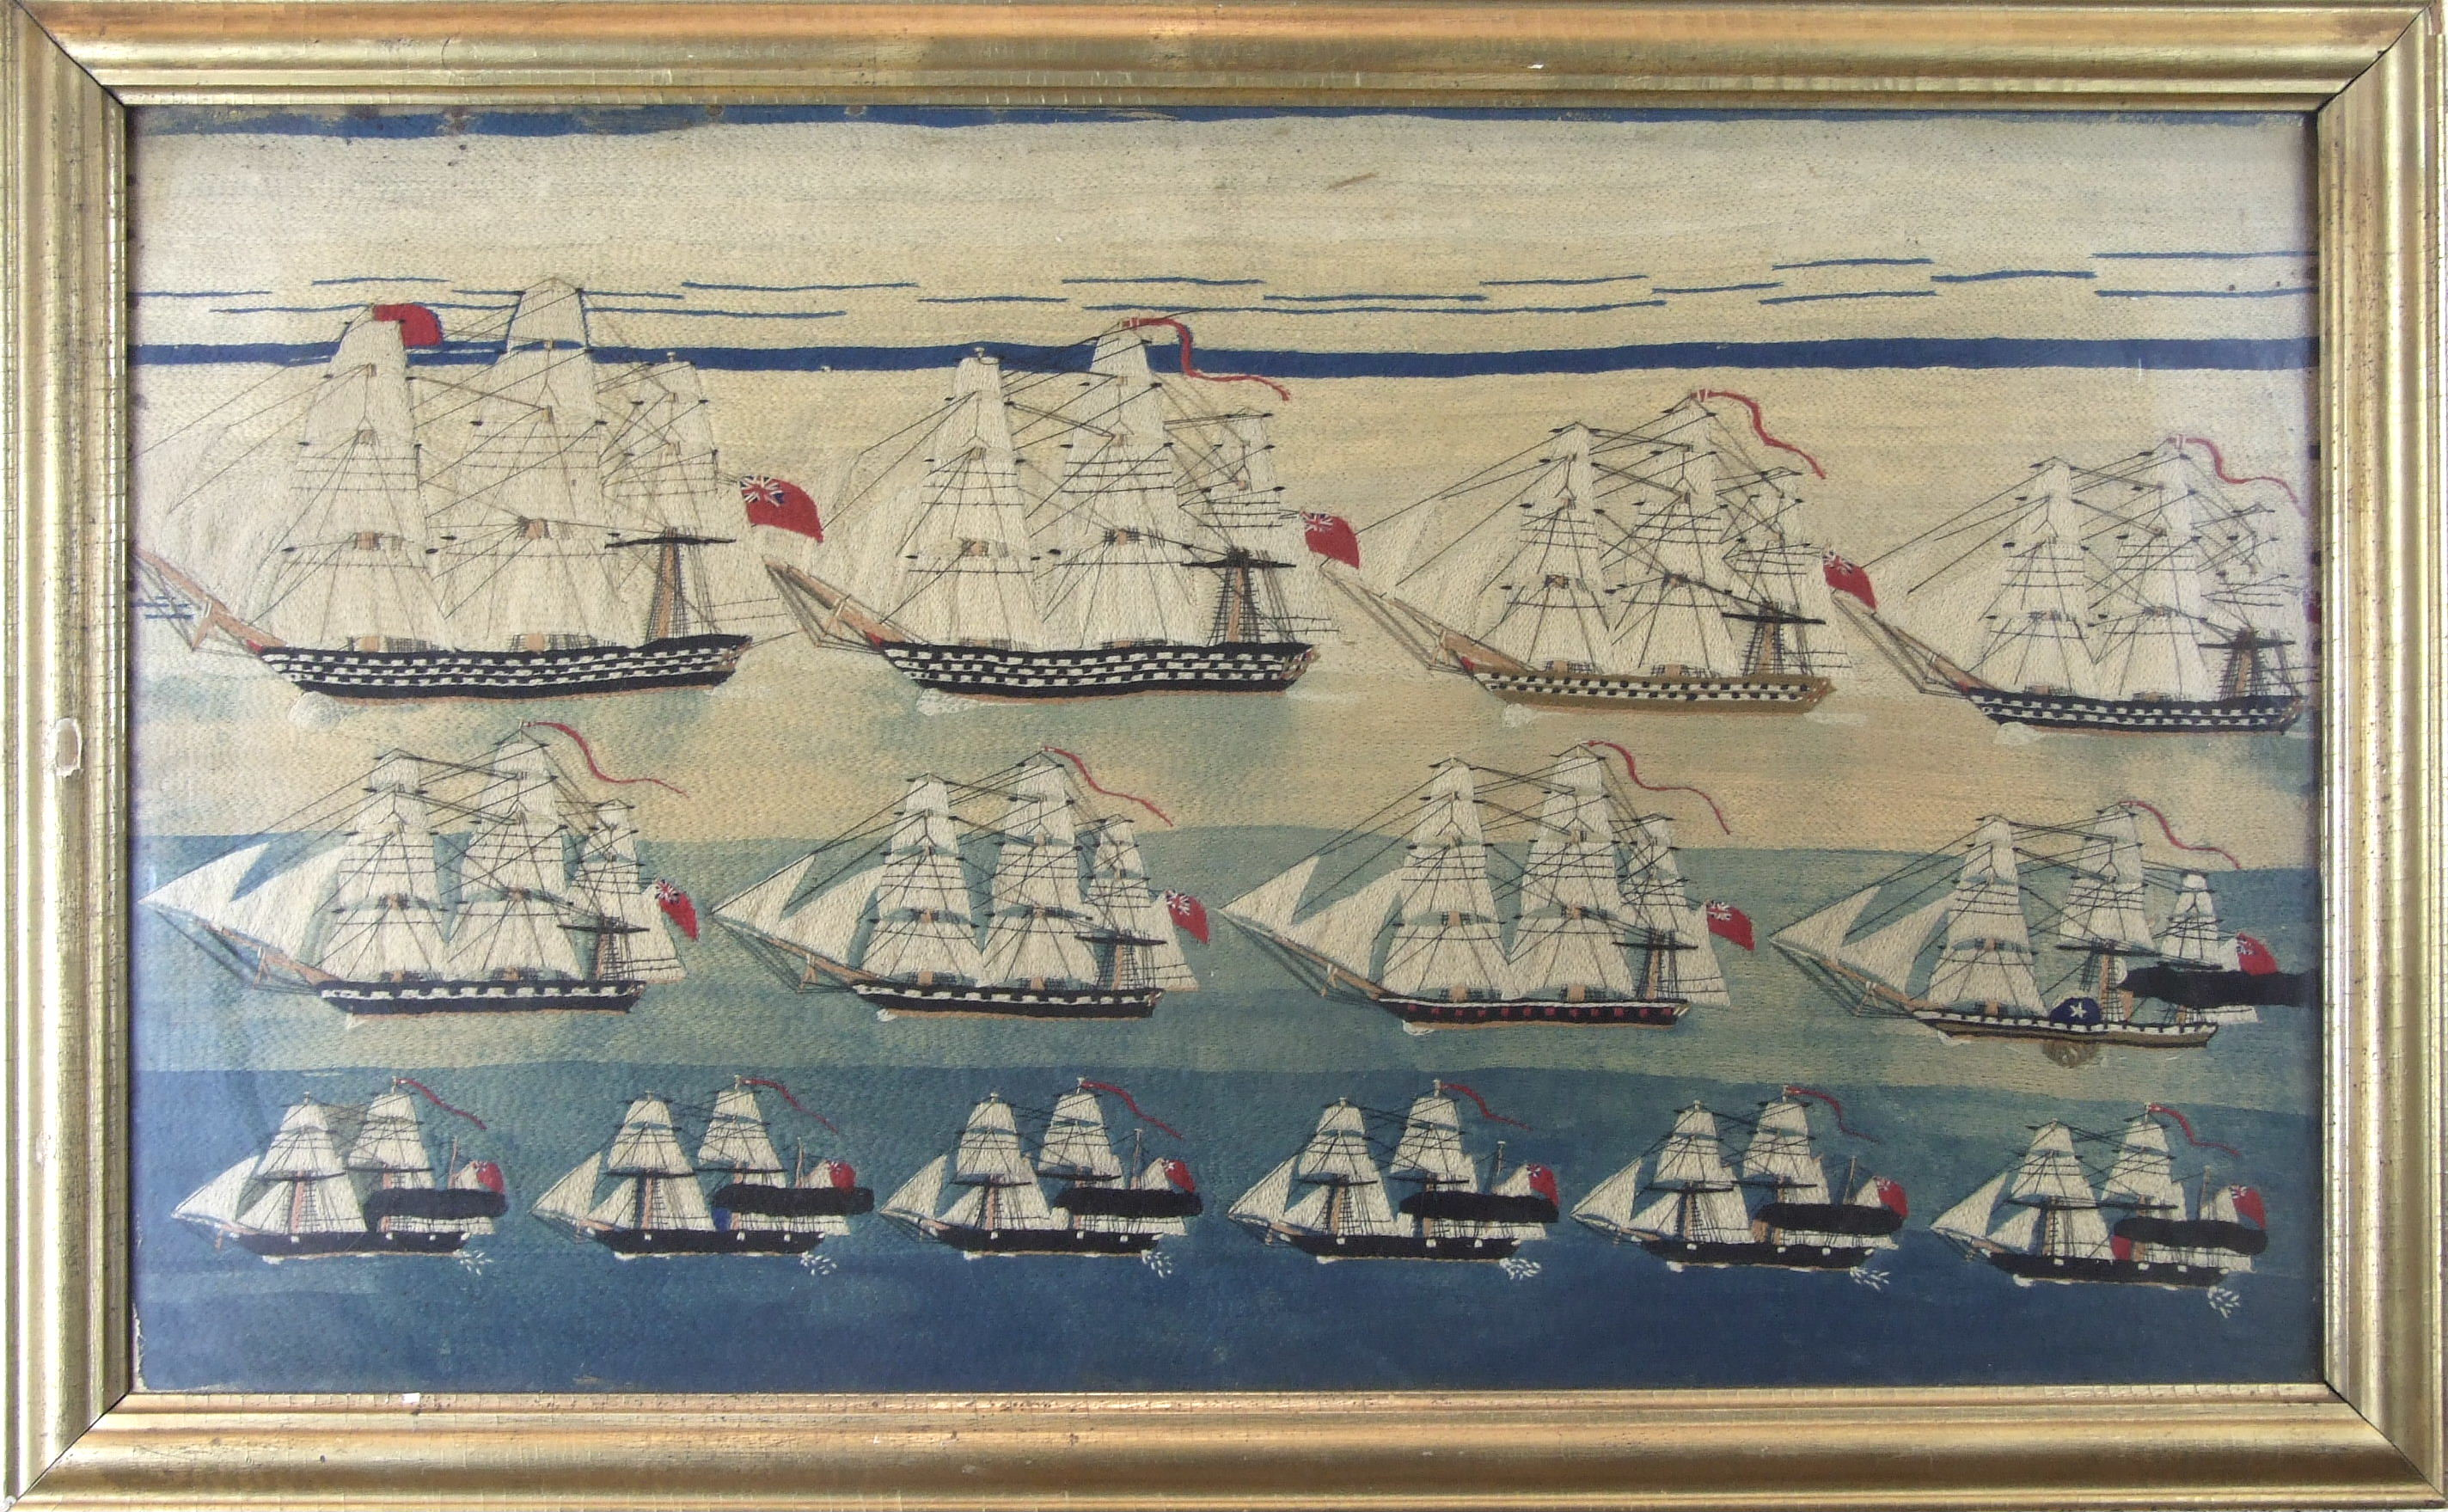 Lot 166 - A good sailor's wool-work picture depicting a mid-19th century squadron of sail, steam-sail and